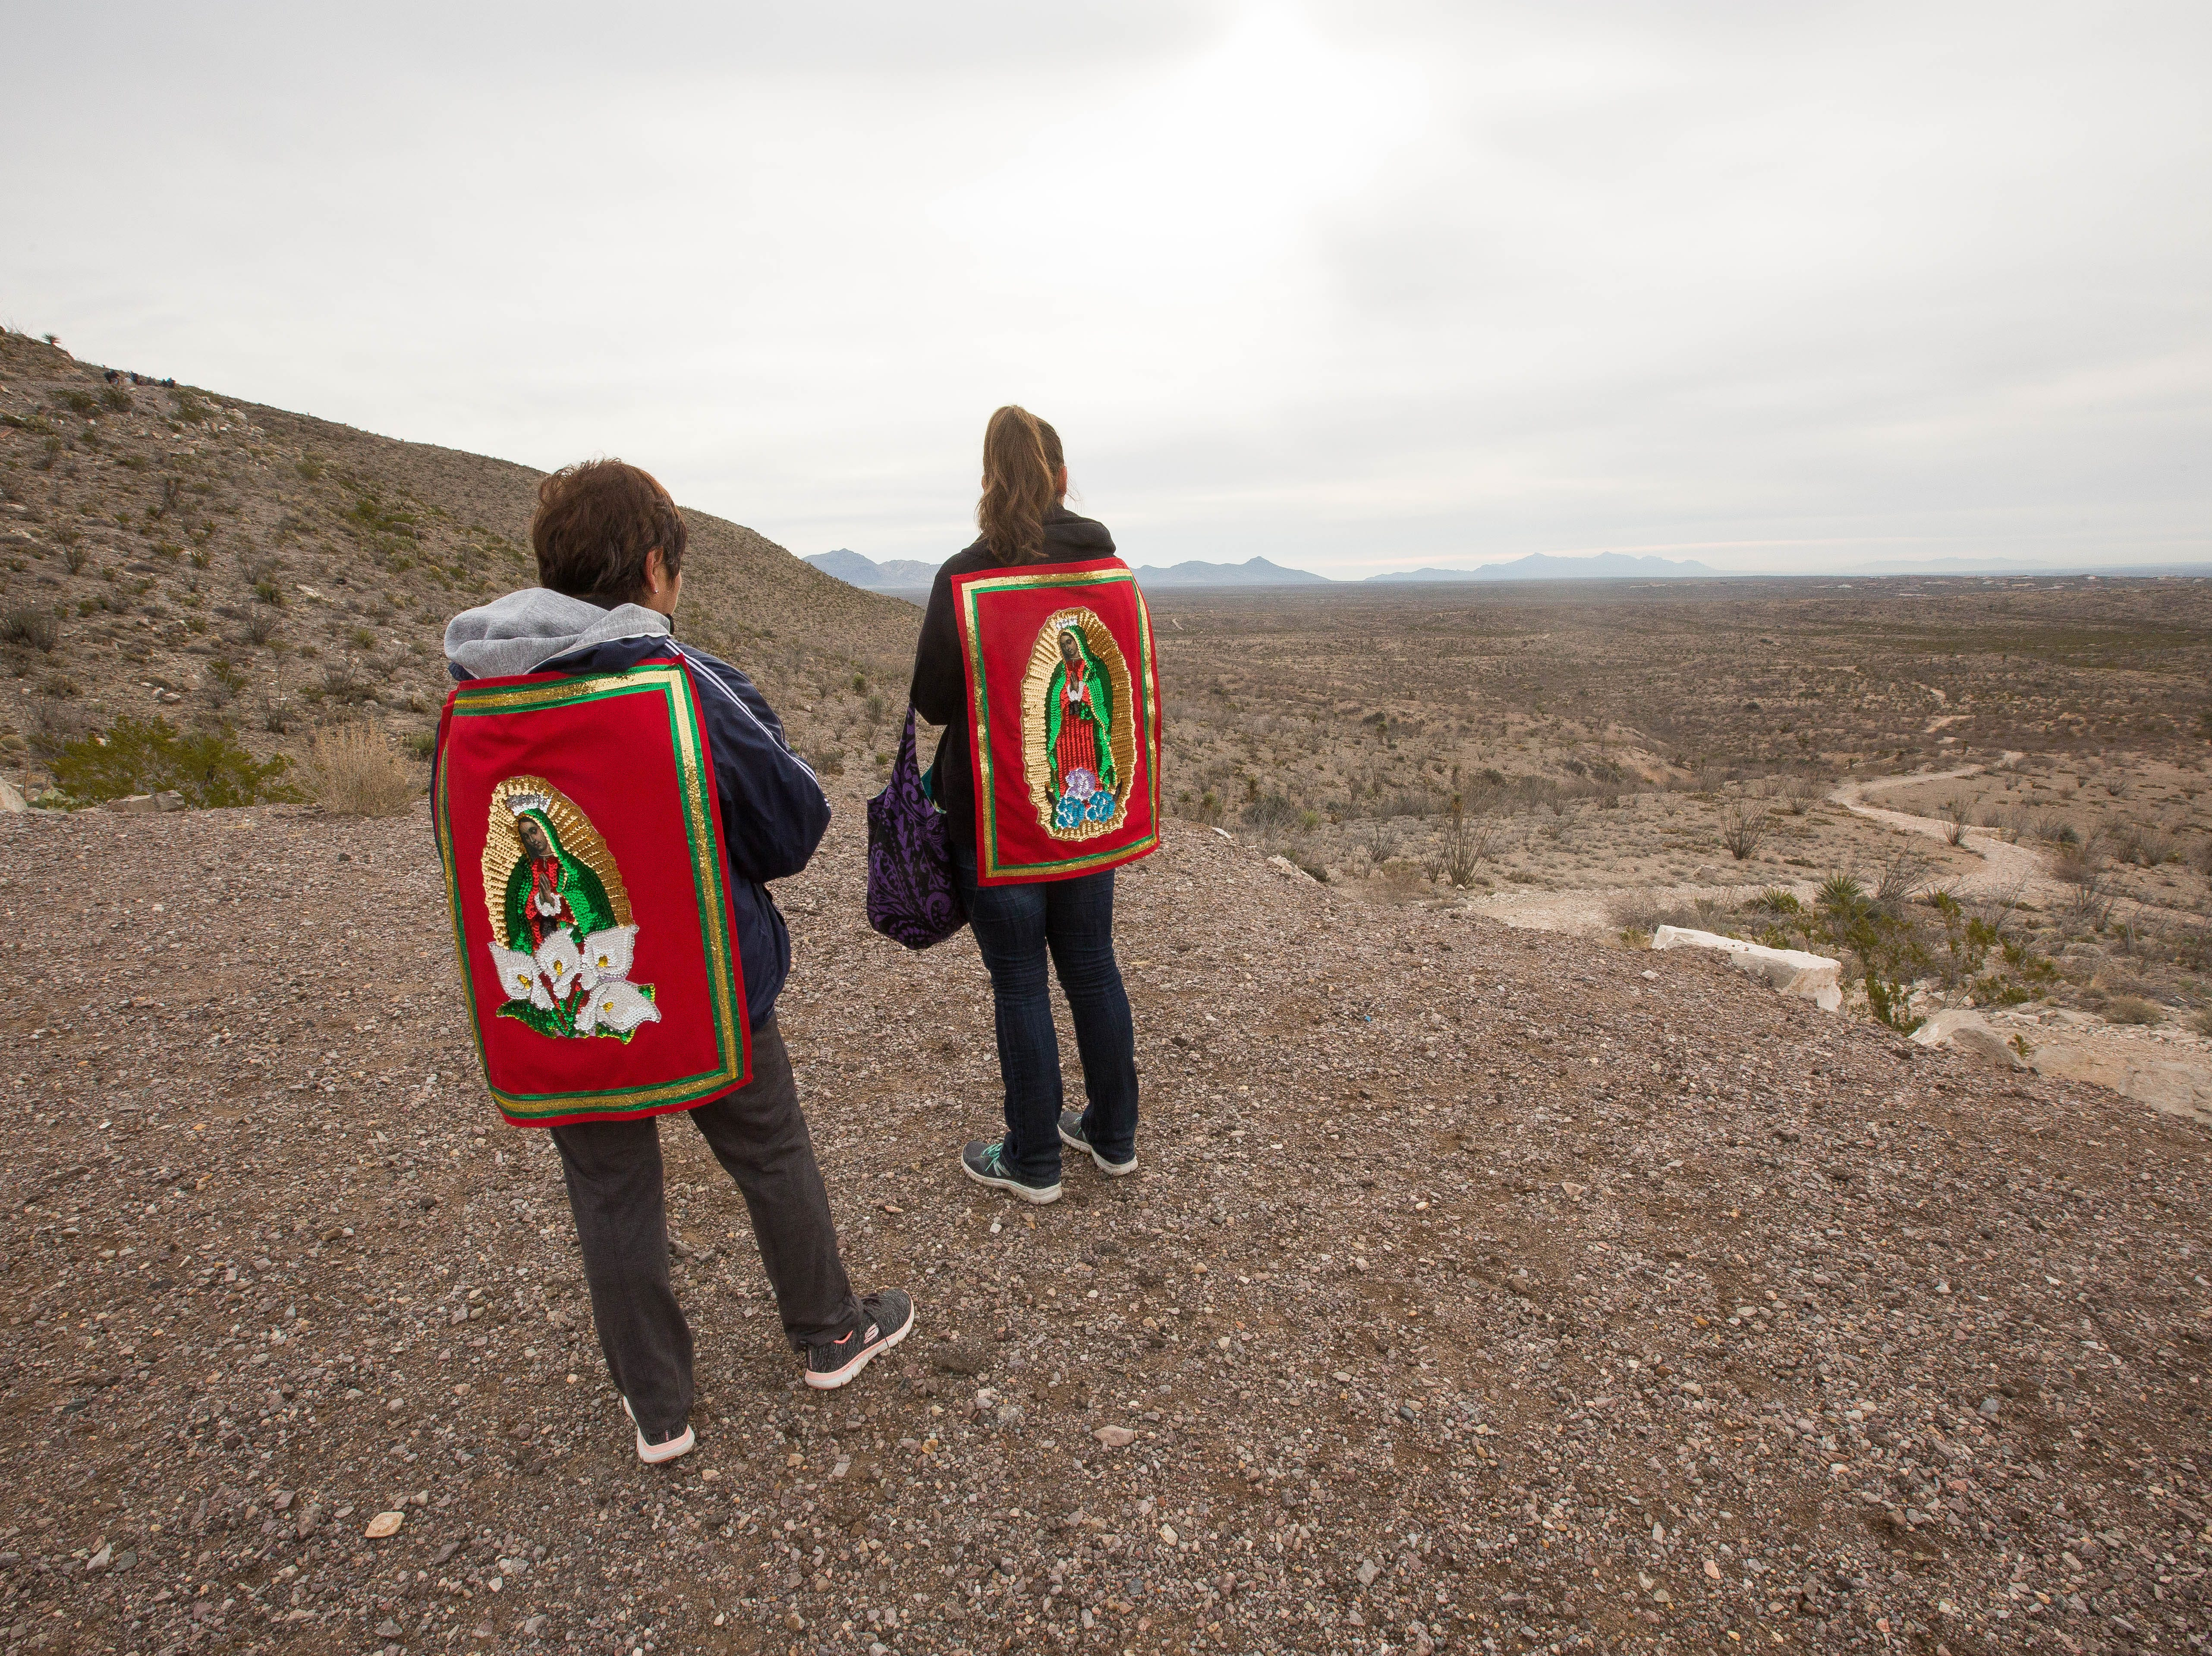 Giovanna Musitano, left and her mother Ramona Musitano, right, take a break as they hike up Tortugas Mountain as part of a pilgrimage from the Tortugas Pueblo to the top of the mountain, Tuesday Dec. 11, 2018.